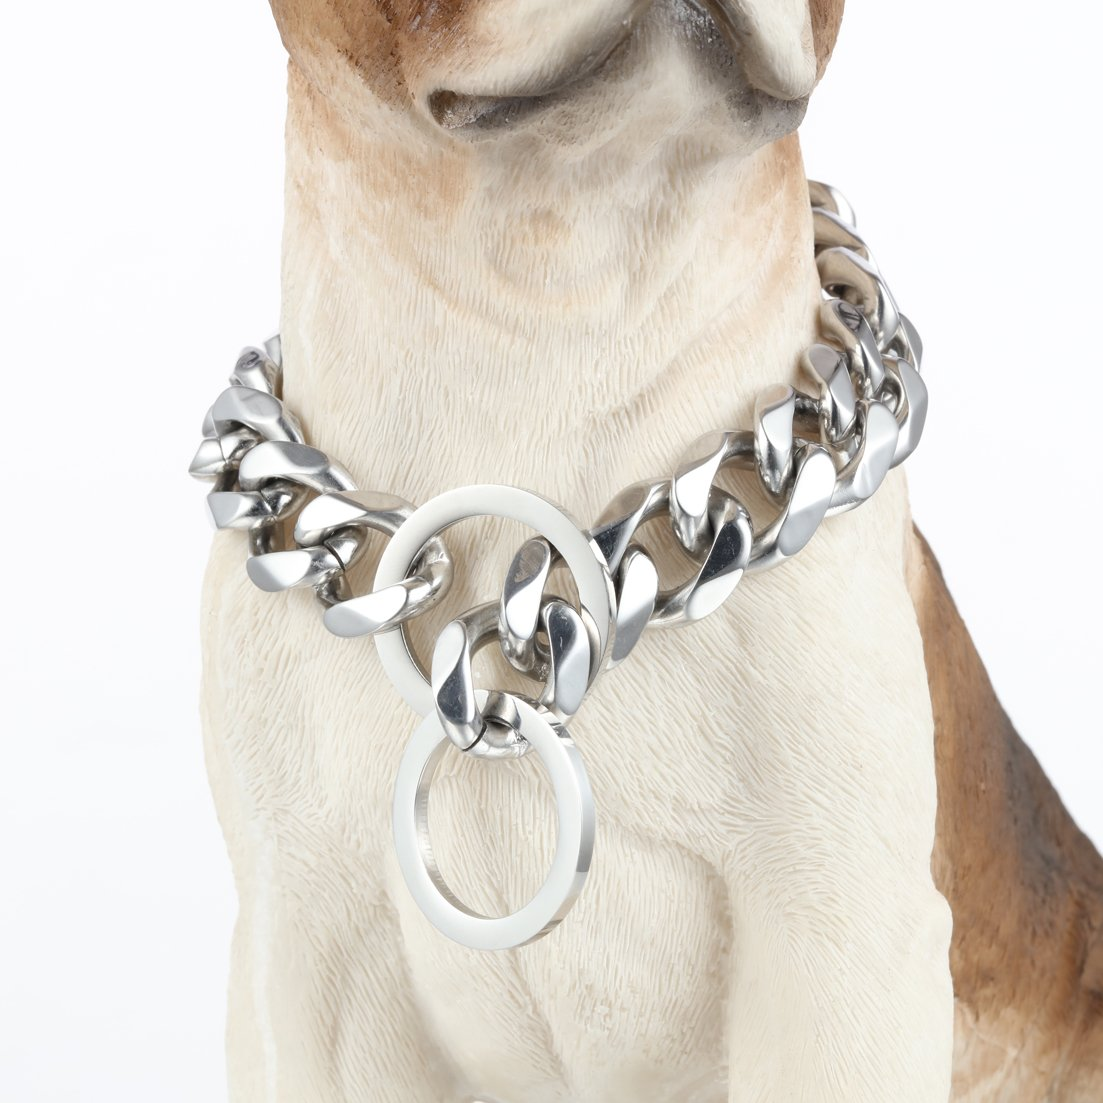 GZMZC 10/12/15/17/19mm Strong 316L Stainless Steel Curb Cuban Link Chain Dog Choker Collar 12-36inch(20inches,19mm)